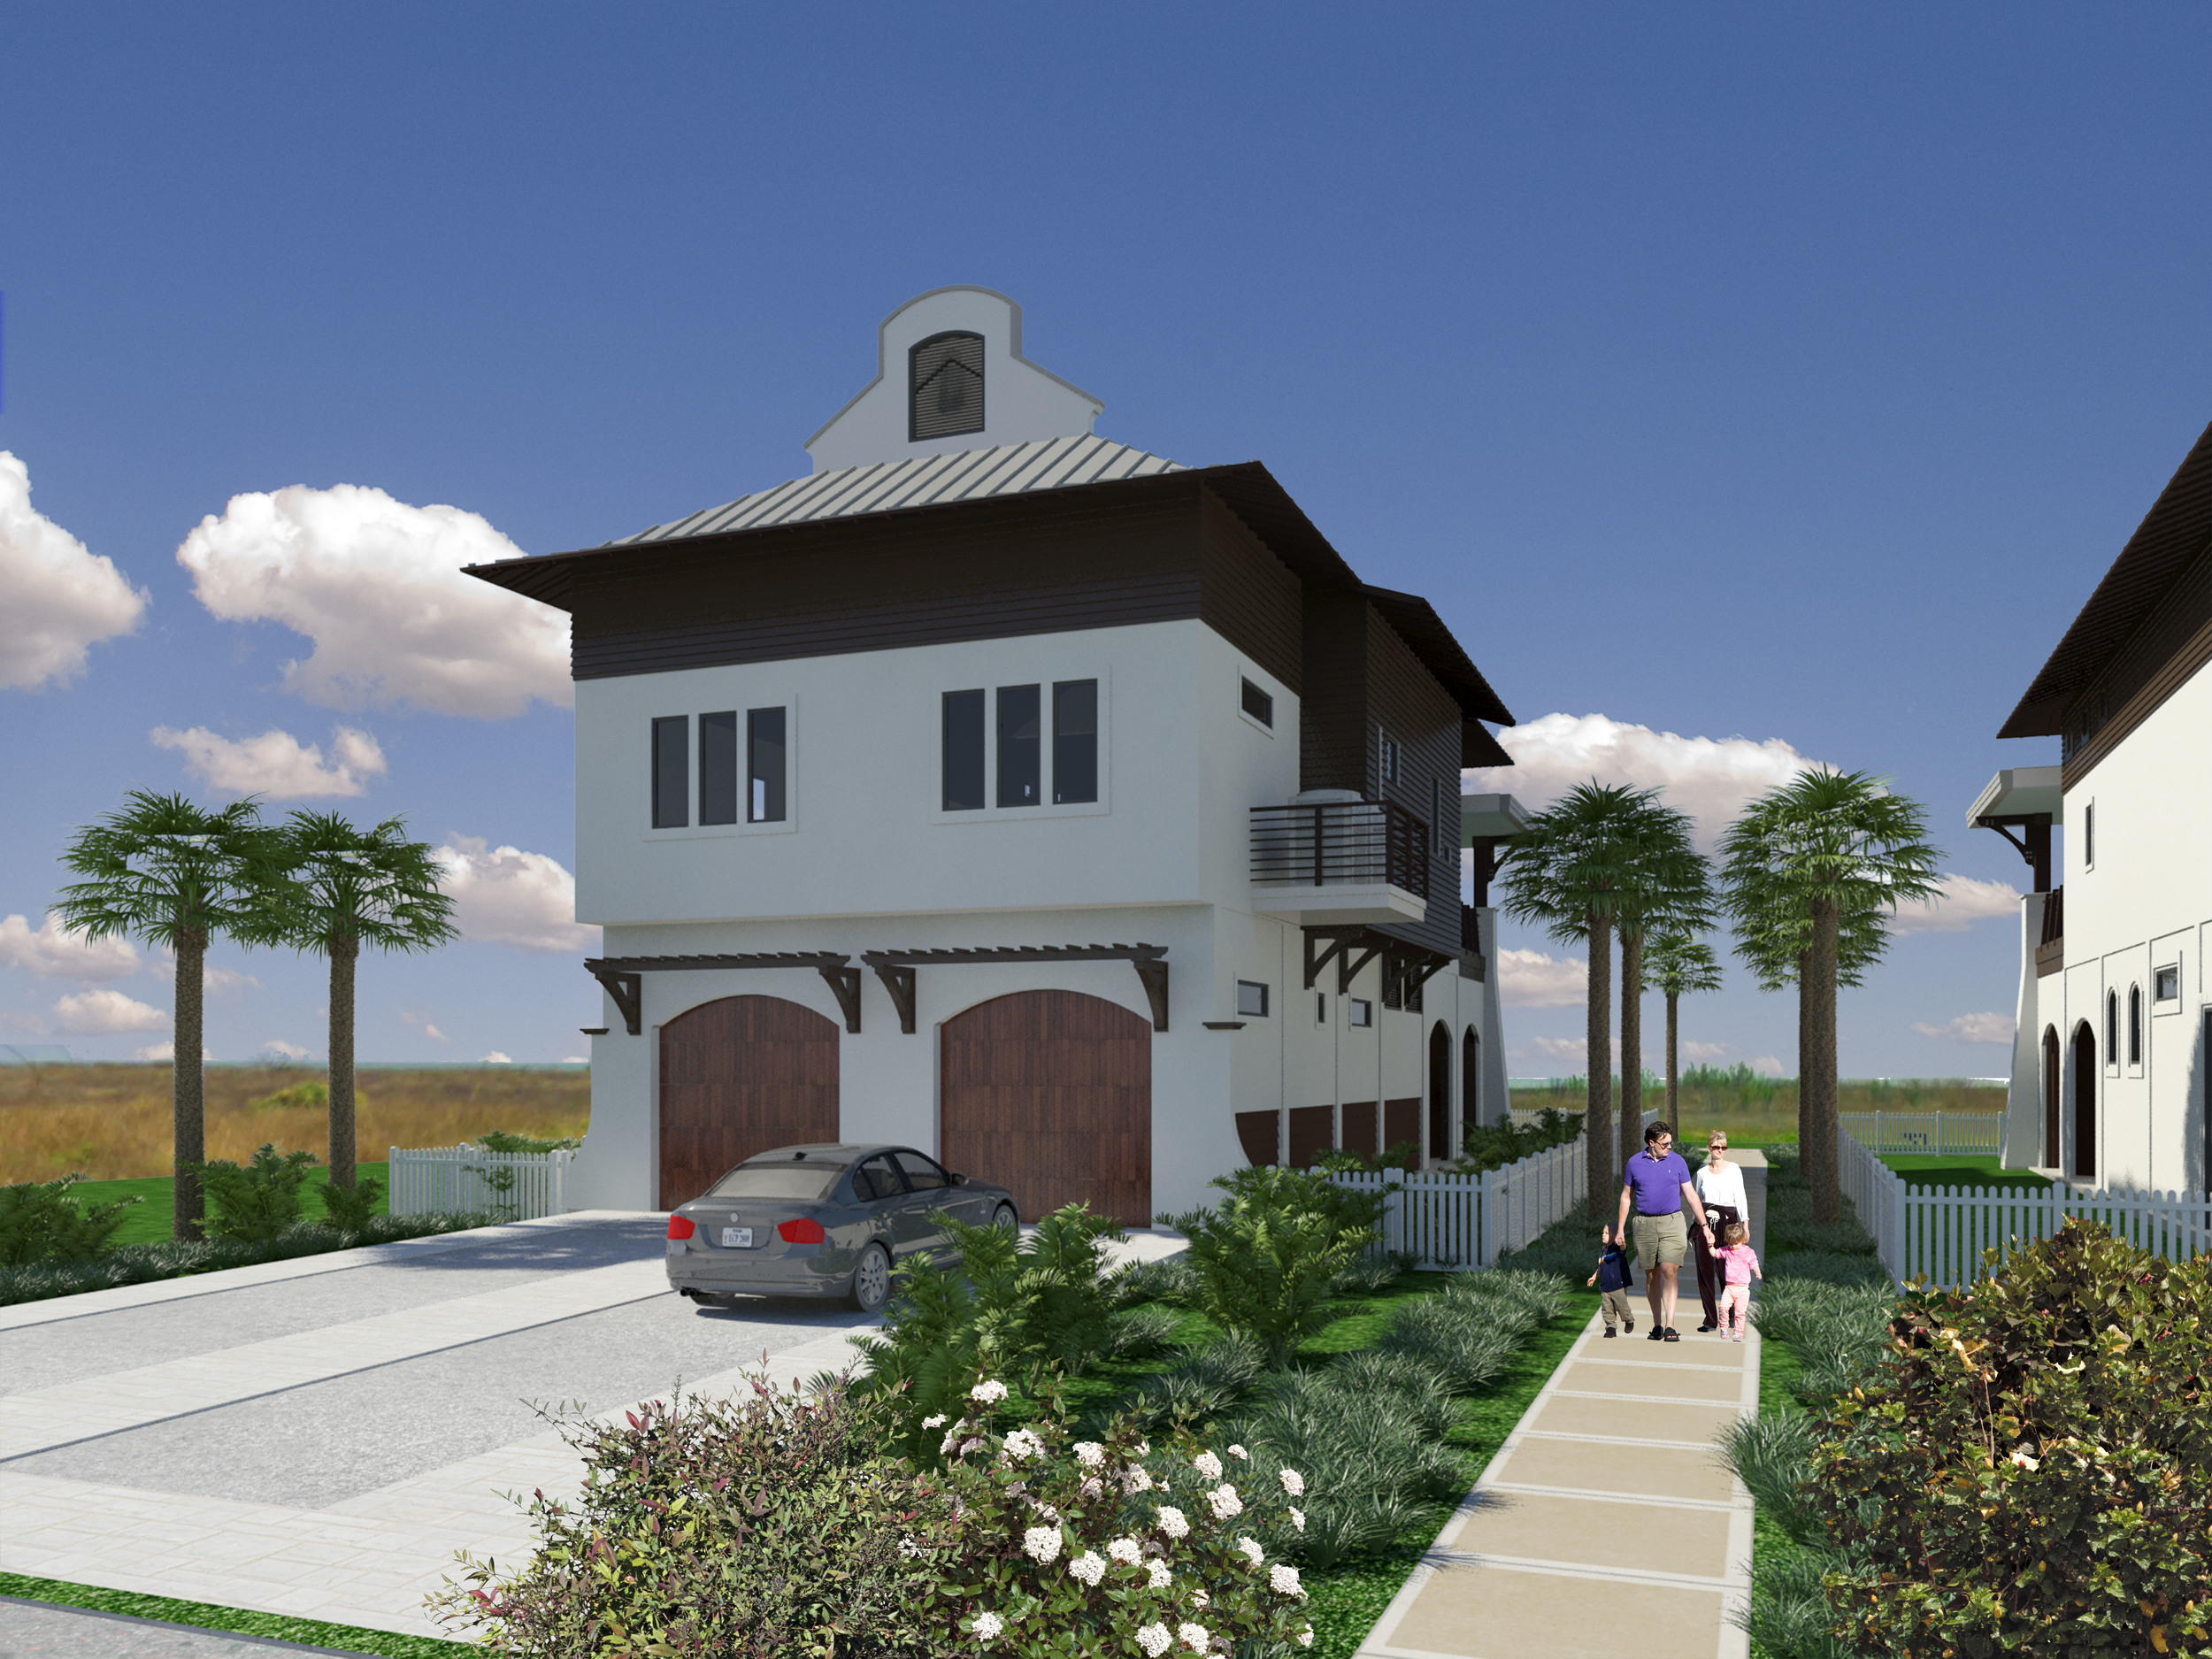 408 Seagrass - Street Side View Looking Towards the Beach